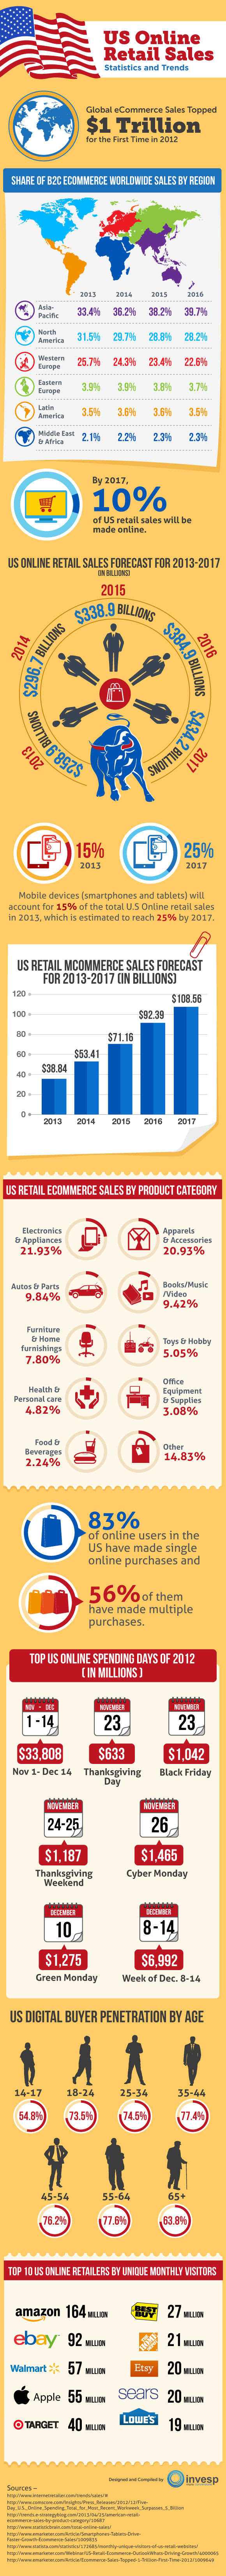 US Online Retail Sales - Statistics and Trends